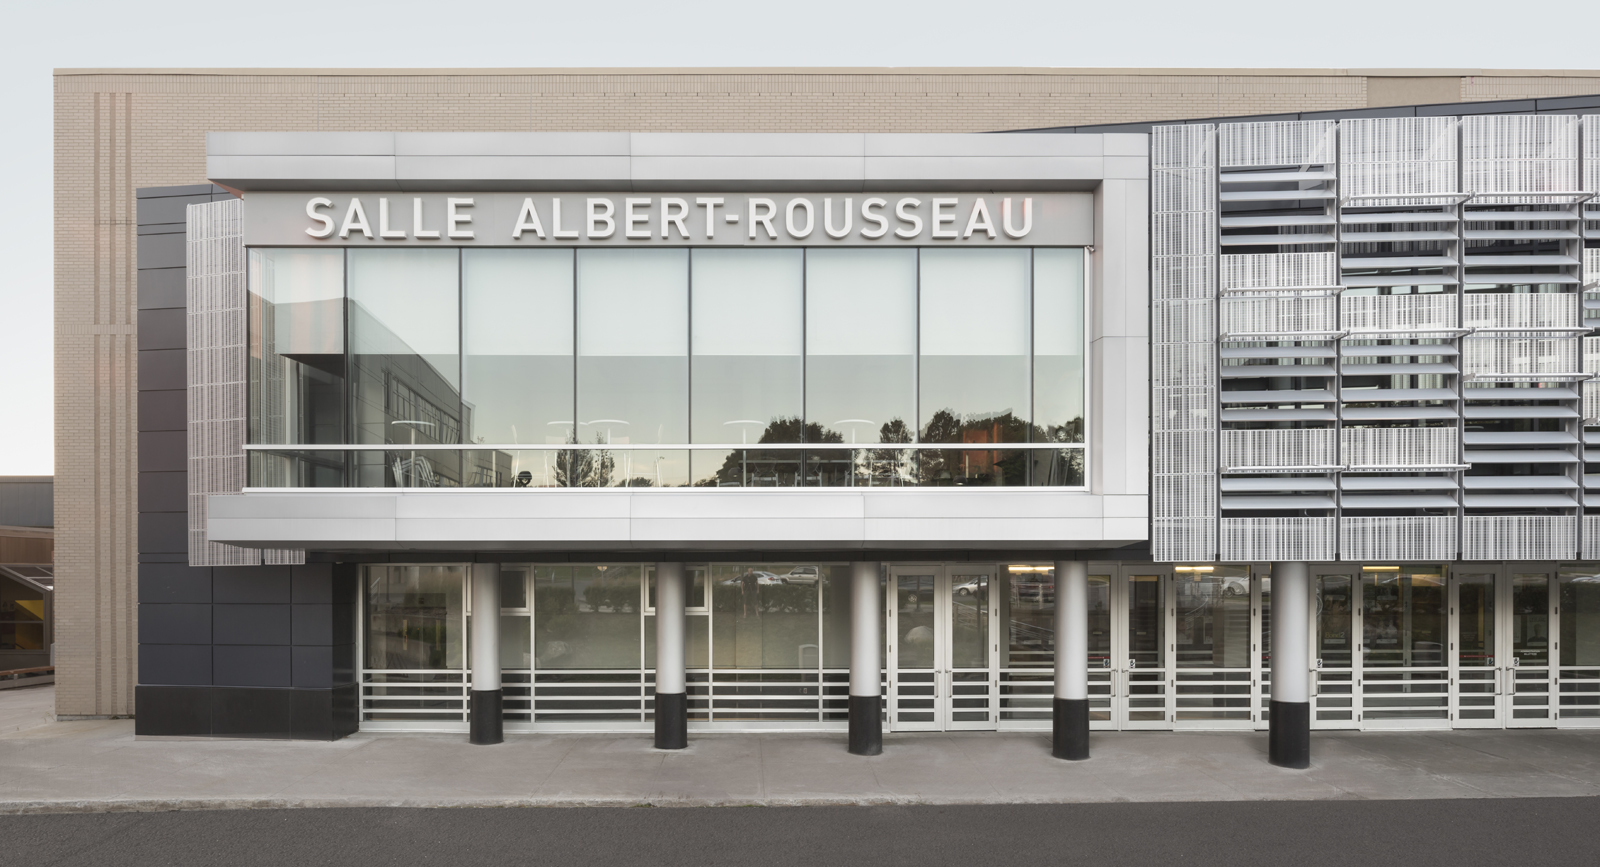 Albert-Rousseau Theater